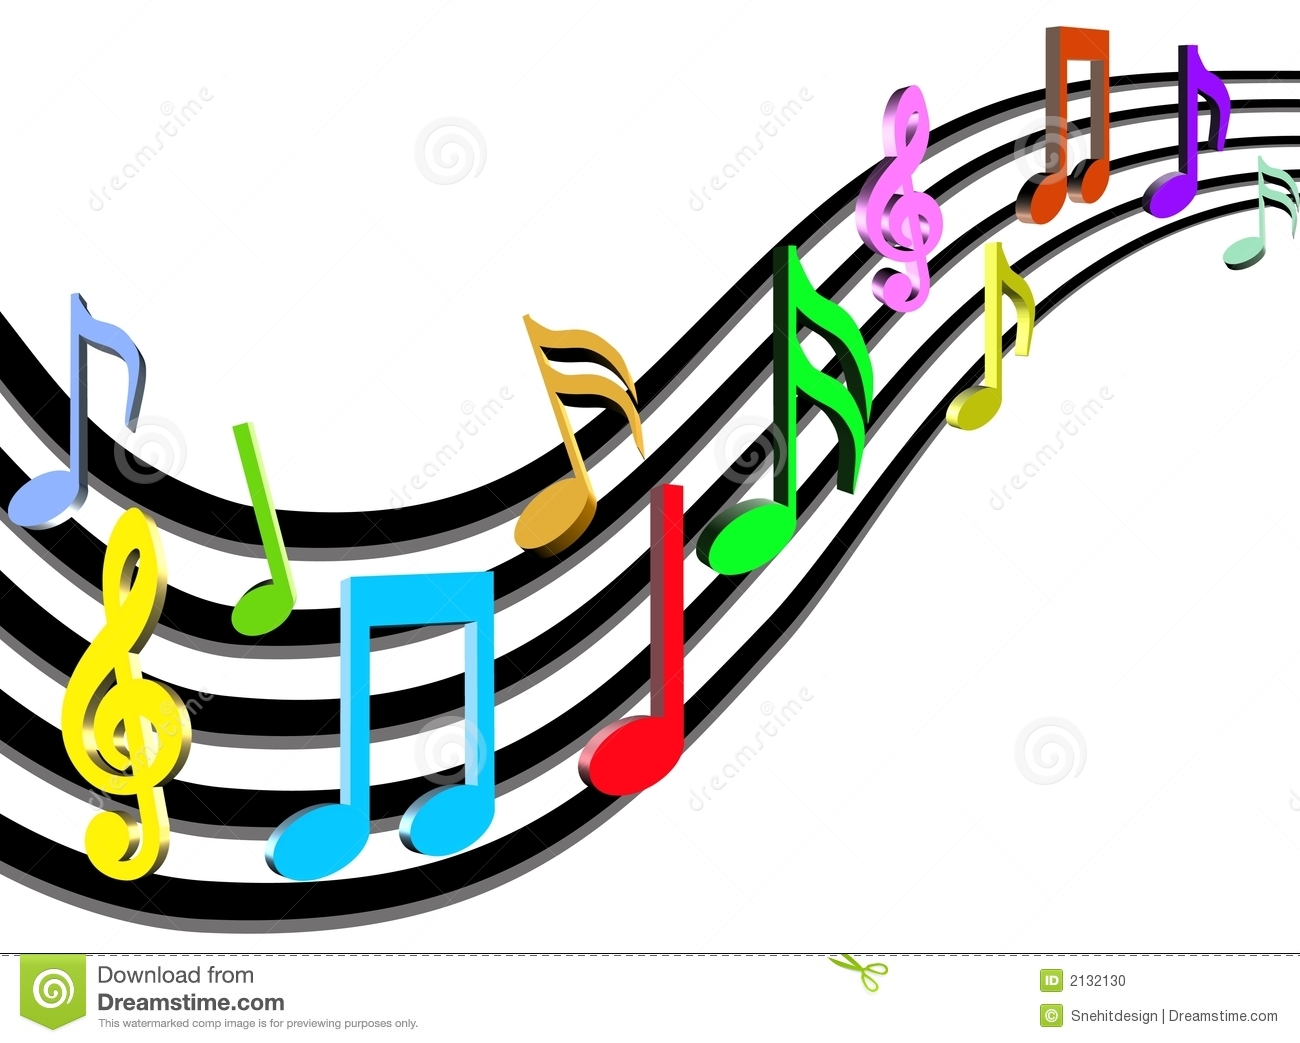 Colorful music notes symbols free download best colorful music 1300x1043 colorful music notes clipart buycottarizona